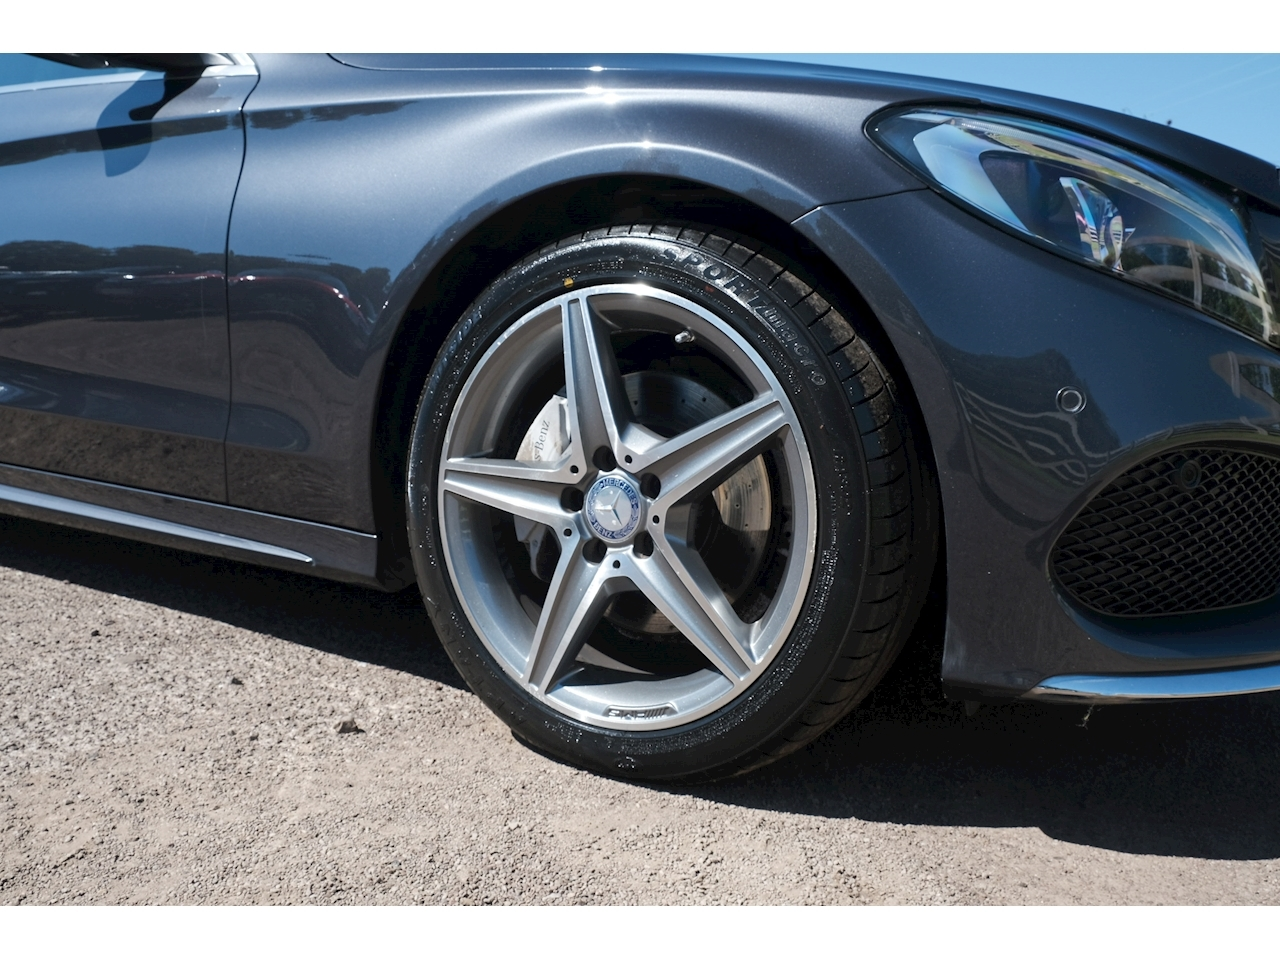 Mercedes-Benz C Class C220 Bluetec Amg Line Premium Plus Saloon 2.1 Automatic Diesel